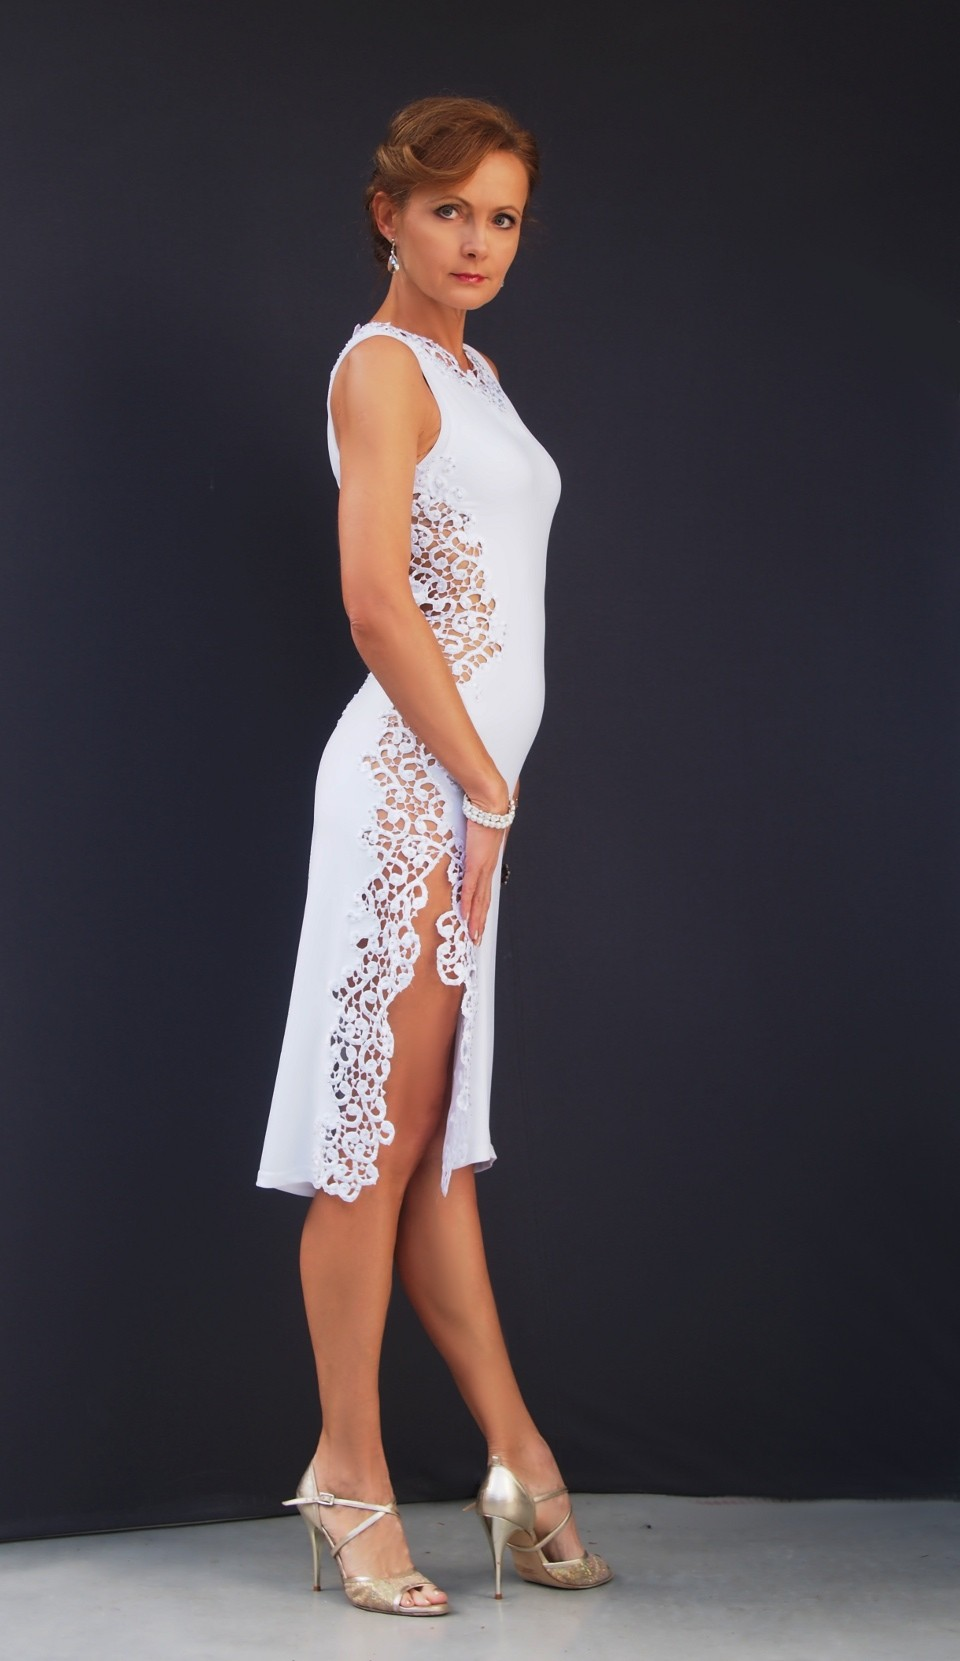 ta 100  tango dress with Swarovski crystals